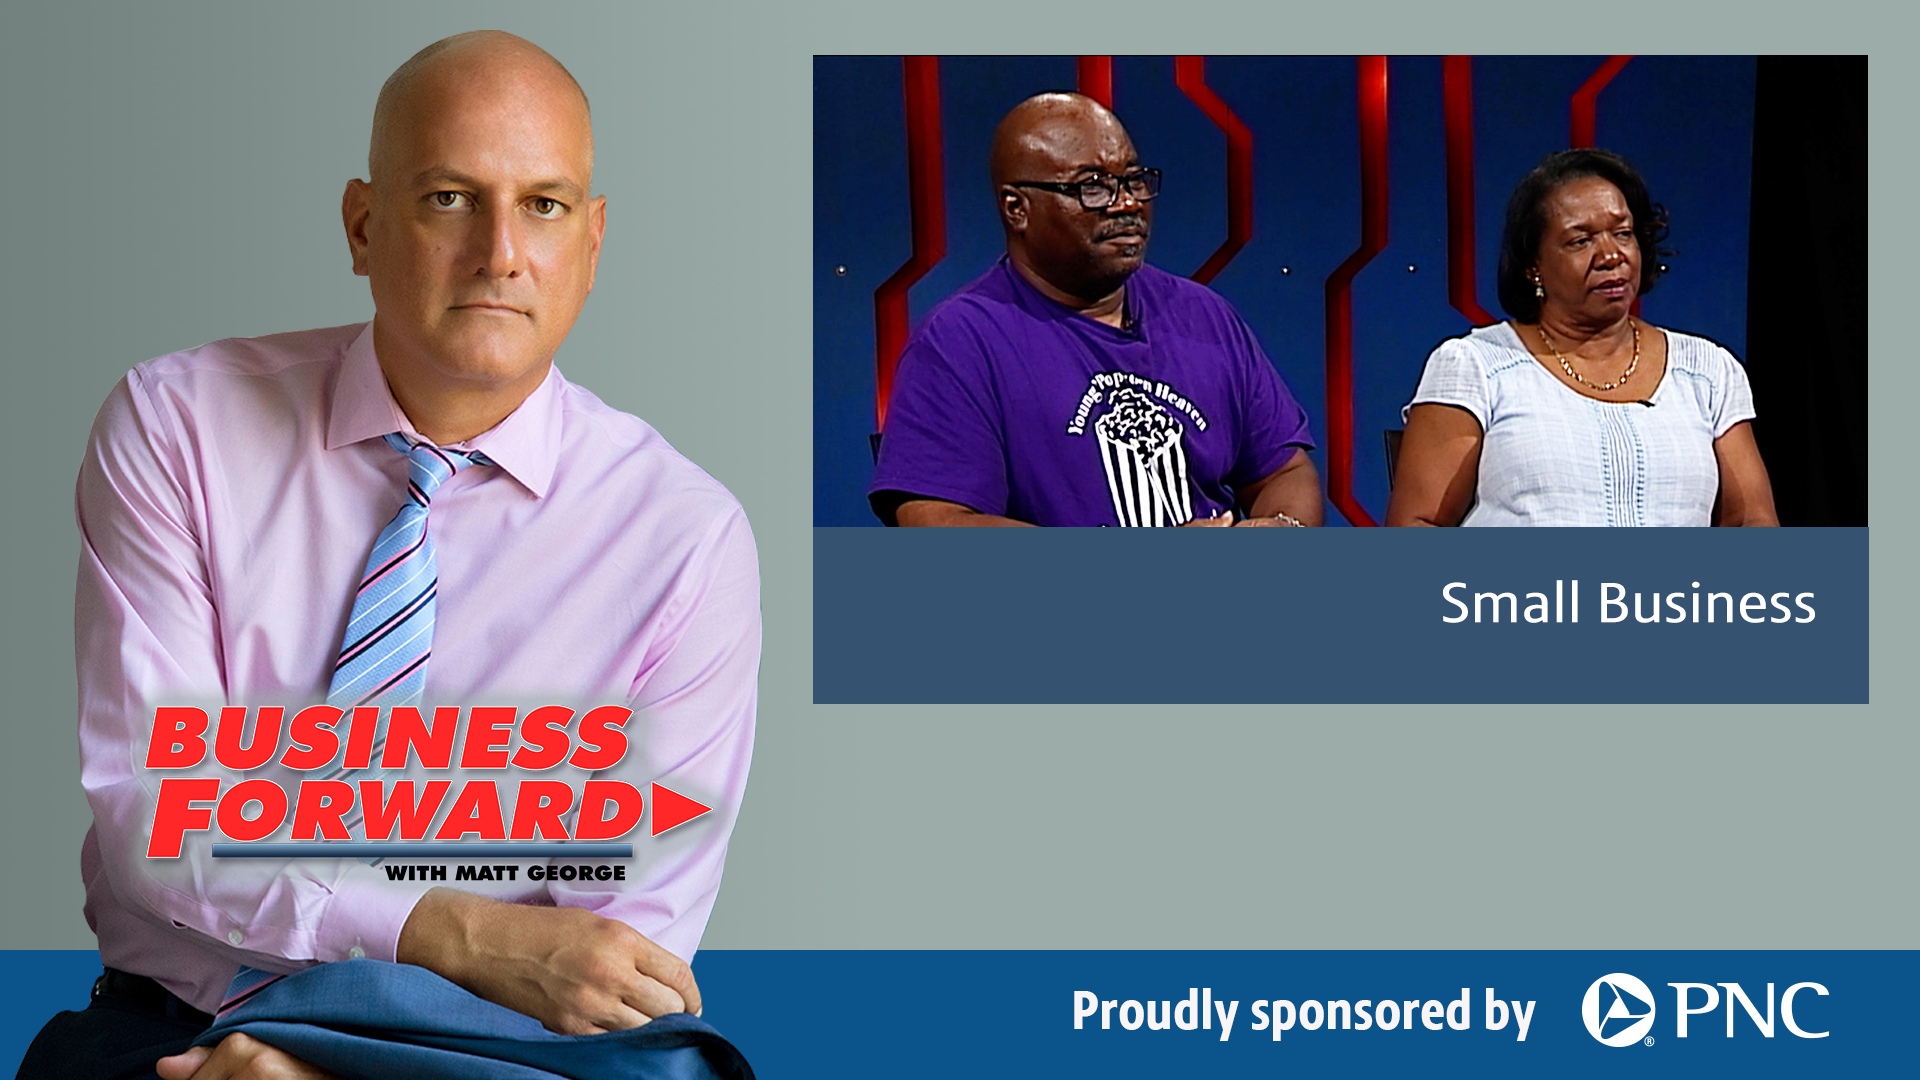 Business Forward with Matt George | Small Business